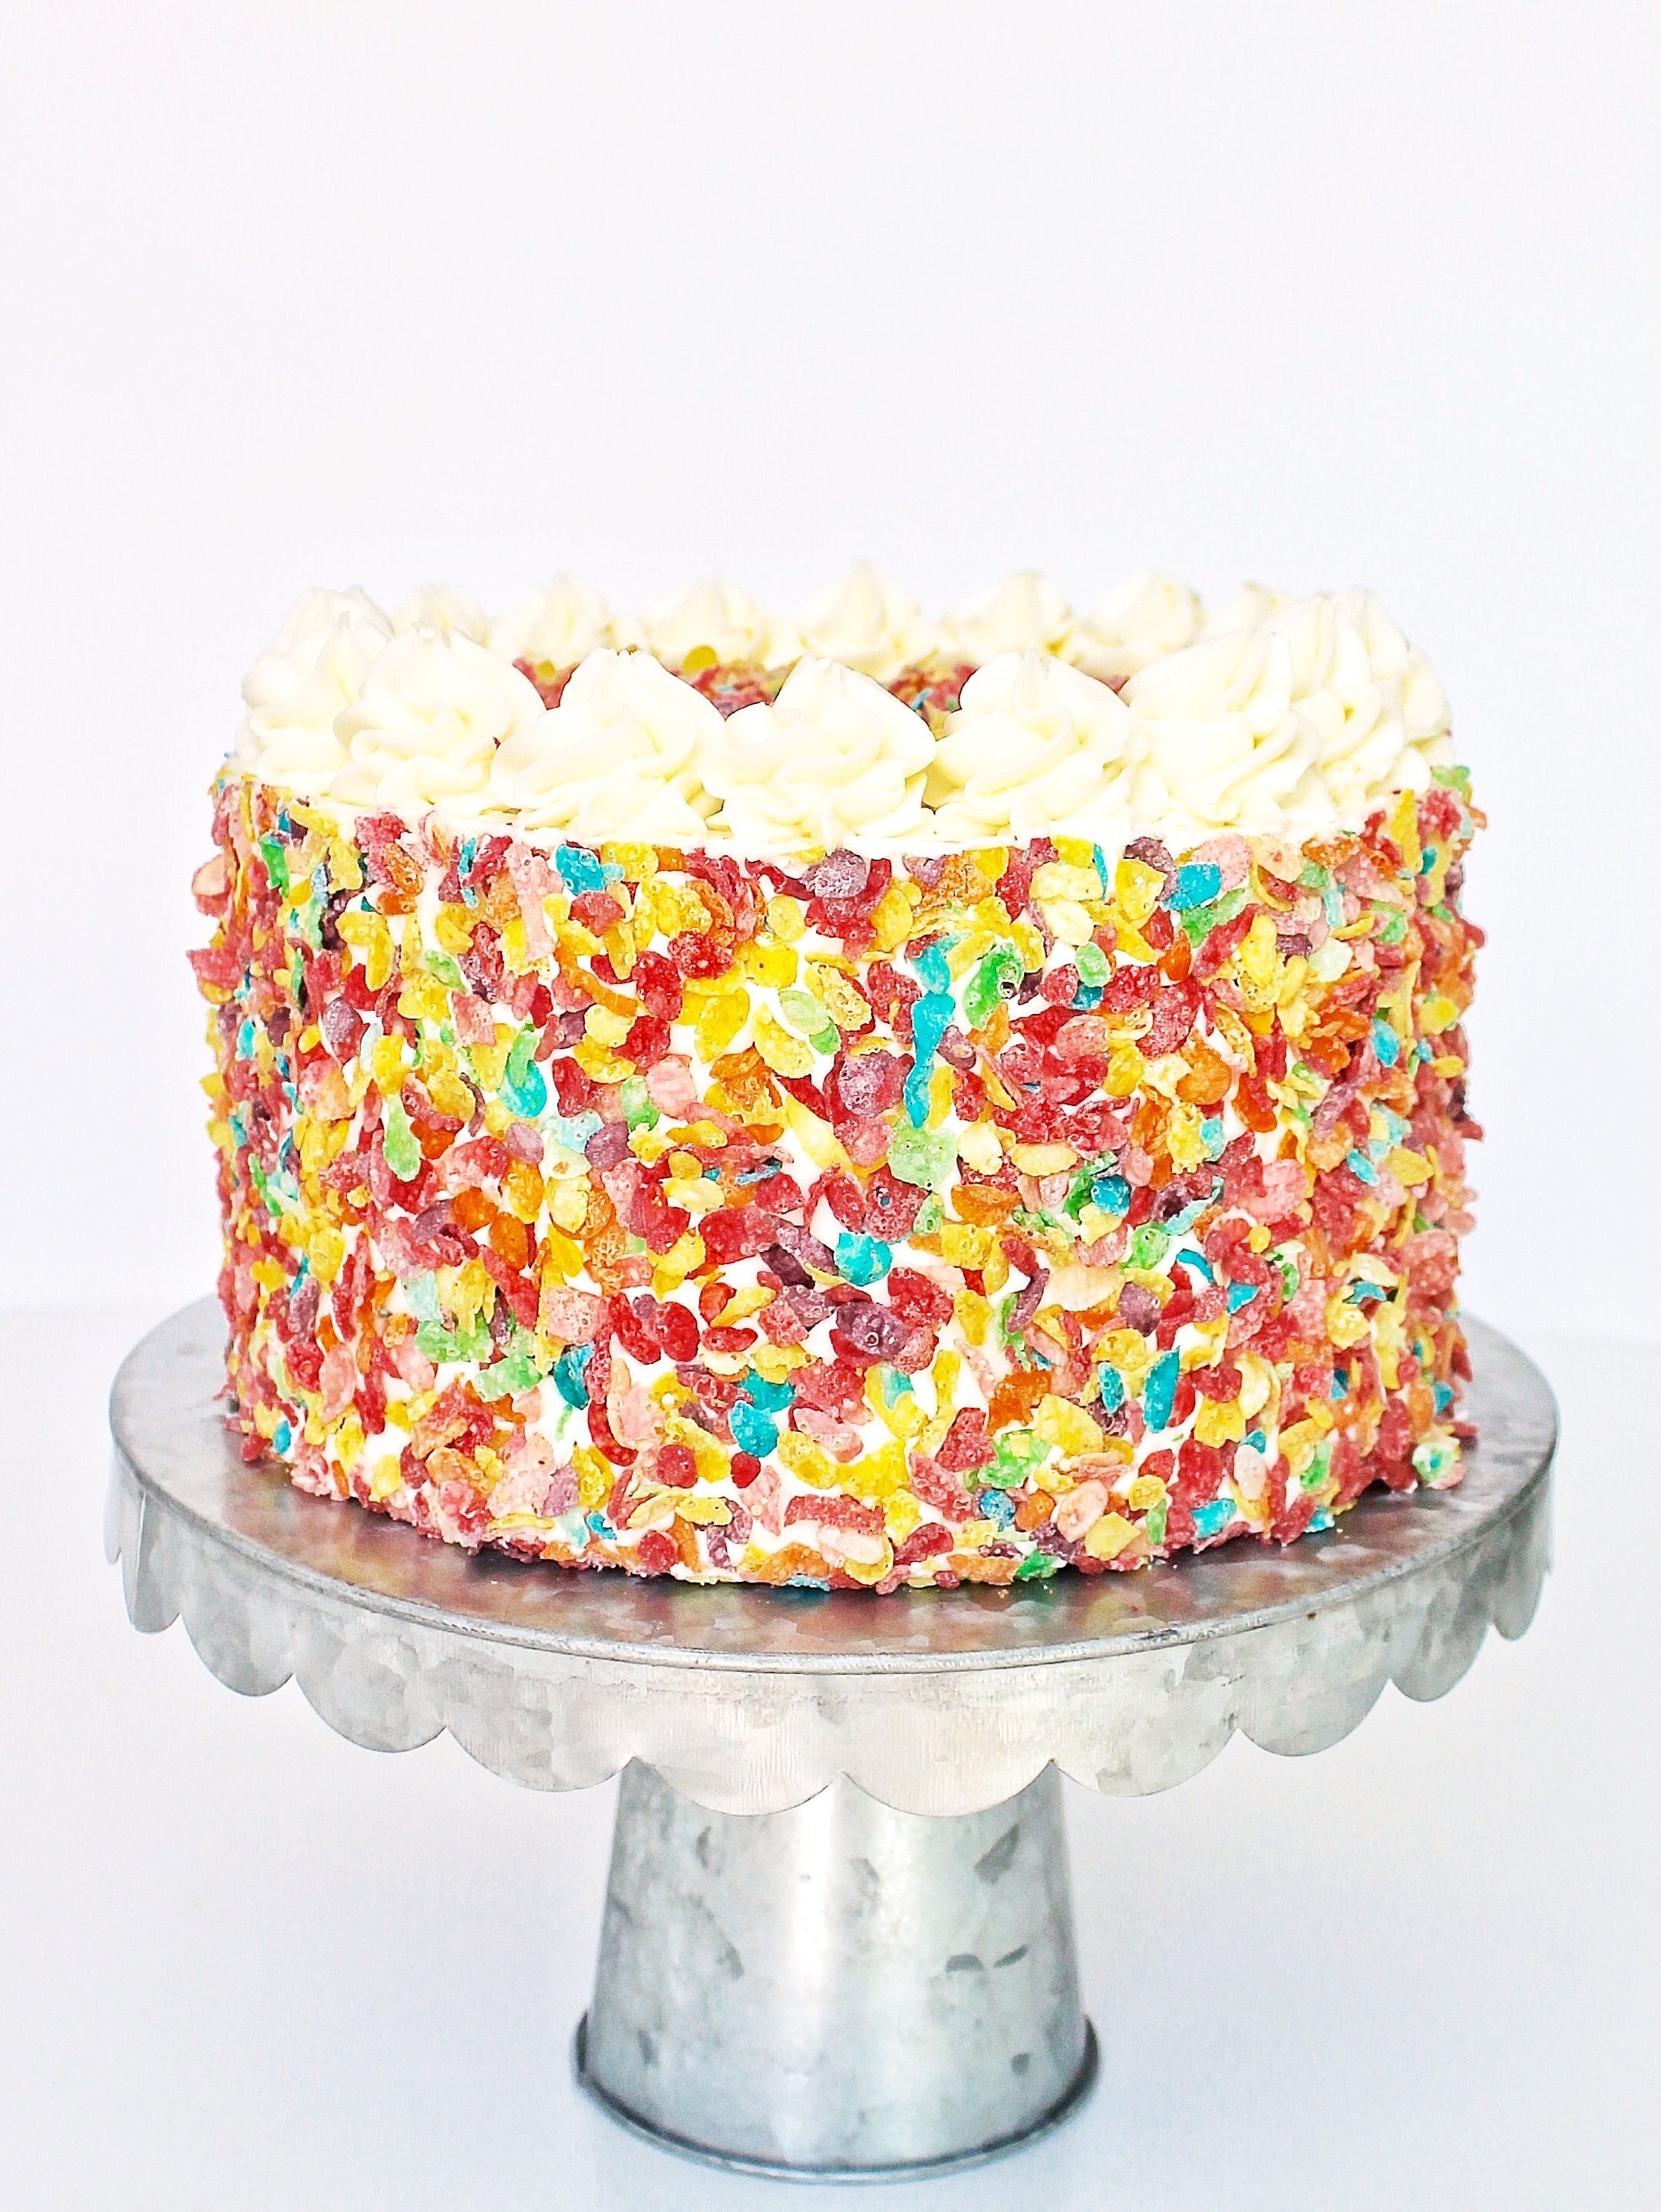 Birthday Cake Flavors Fruity Pebbles Cake Recipe Pastries Pinterest Cake Desserts